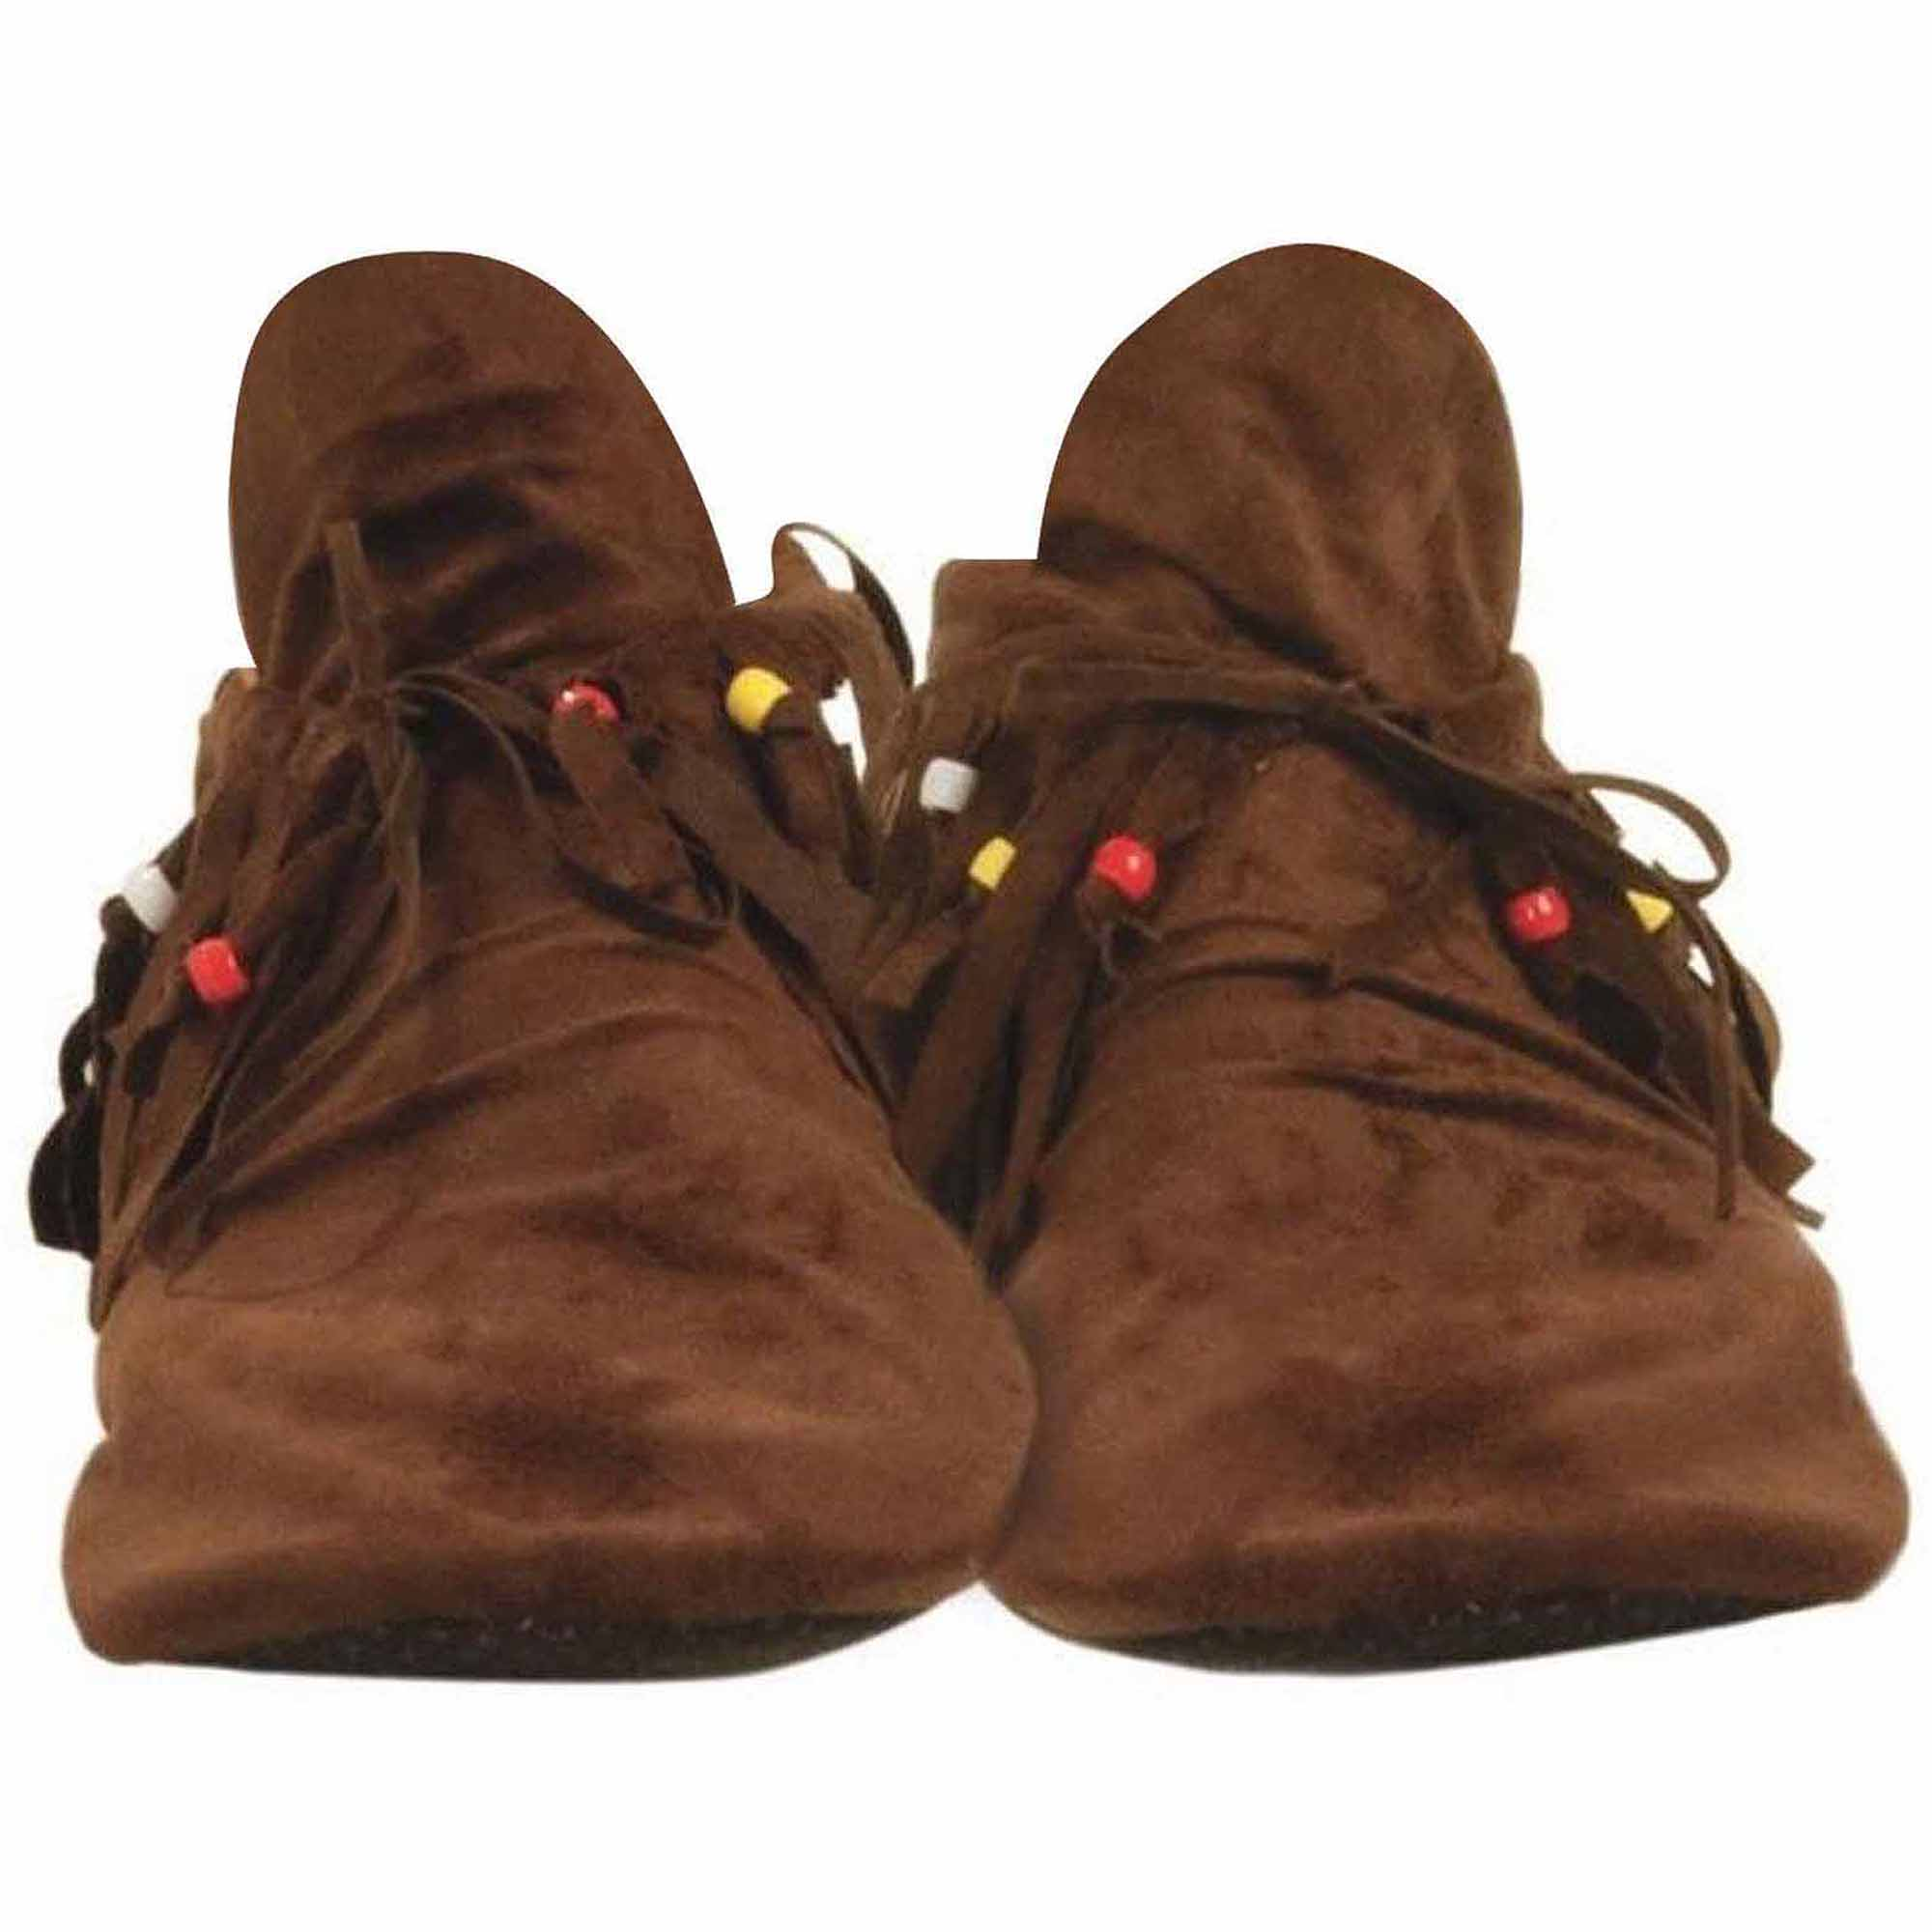 Hippie Moccasins Adult Halloween Costume Accessory